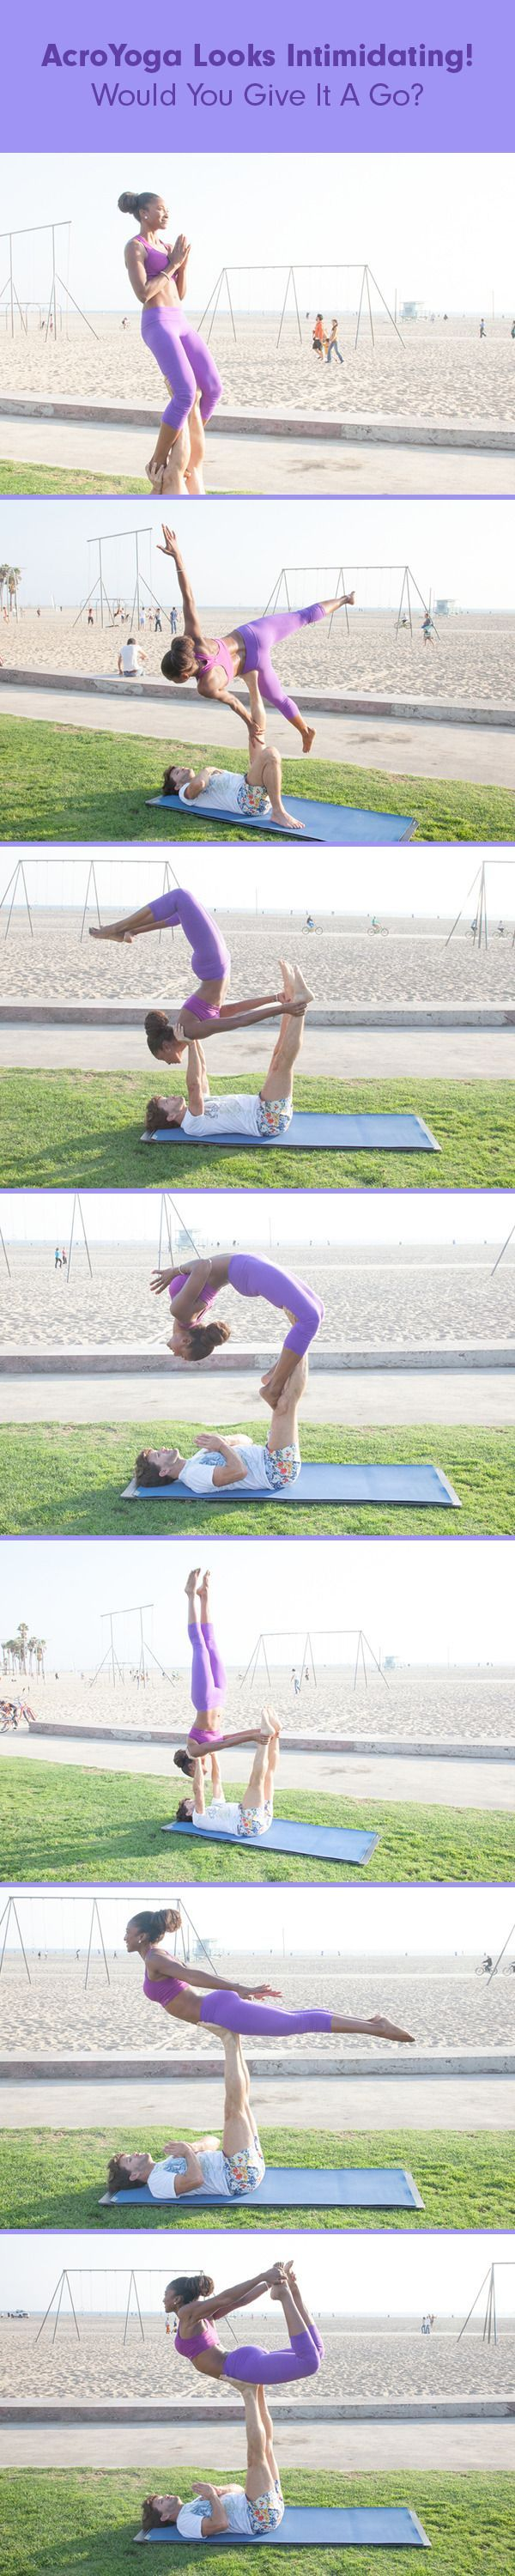 AcroYoga Looks Intimidating! Would You Give It A Go?.  See more at the image